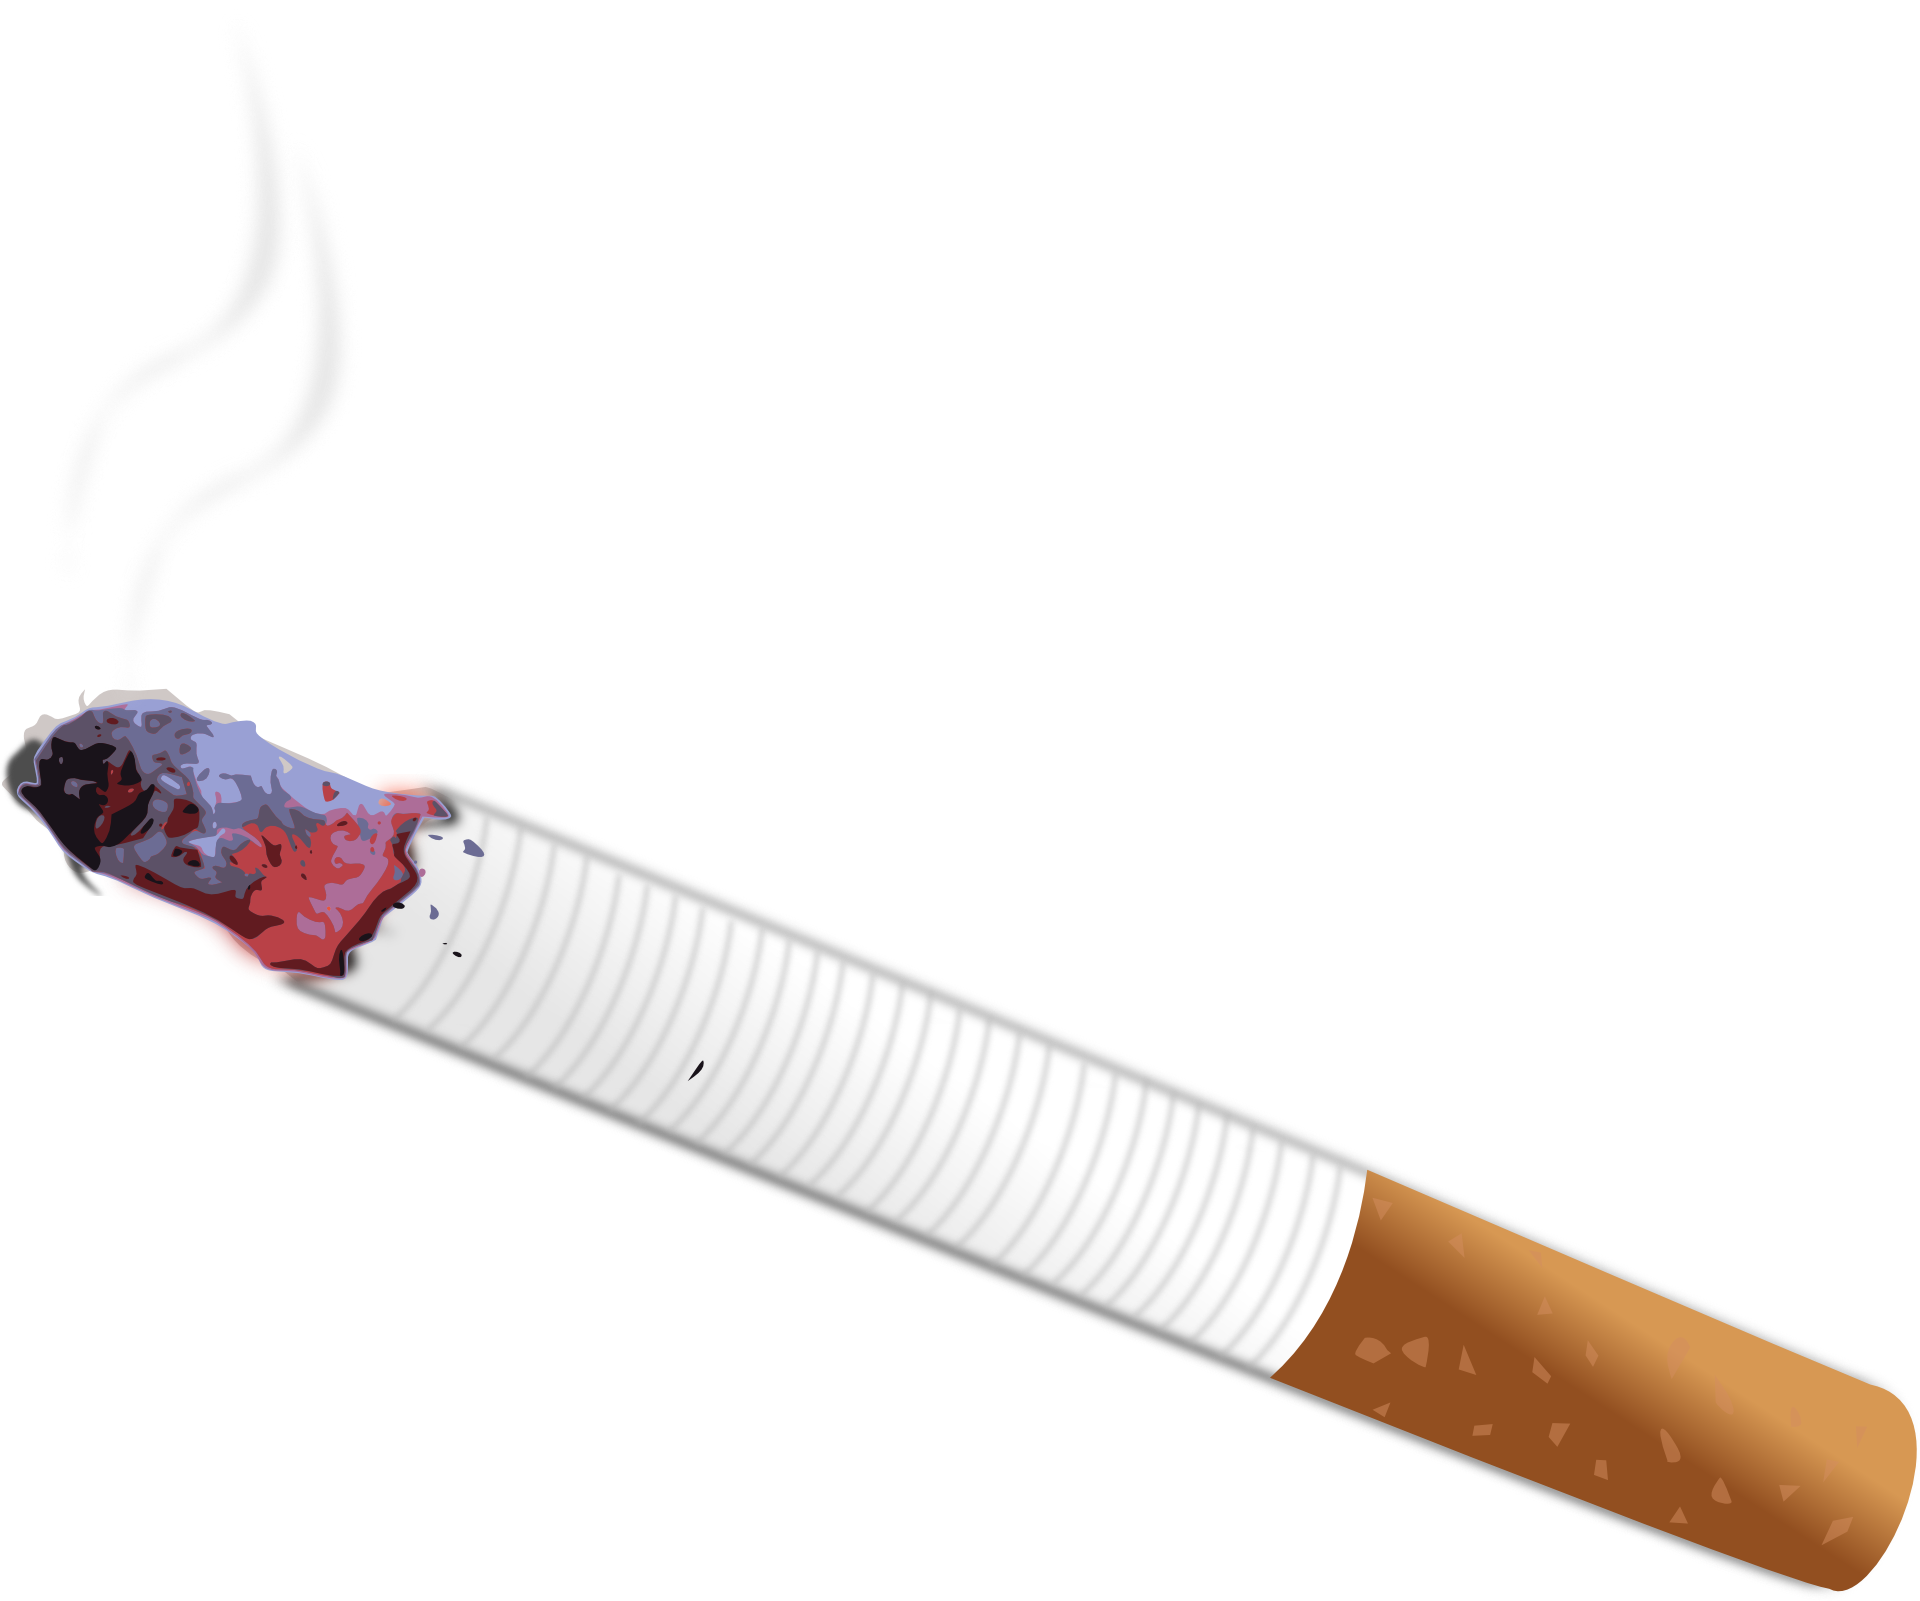 animated cigarette clipart - Clipground